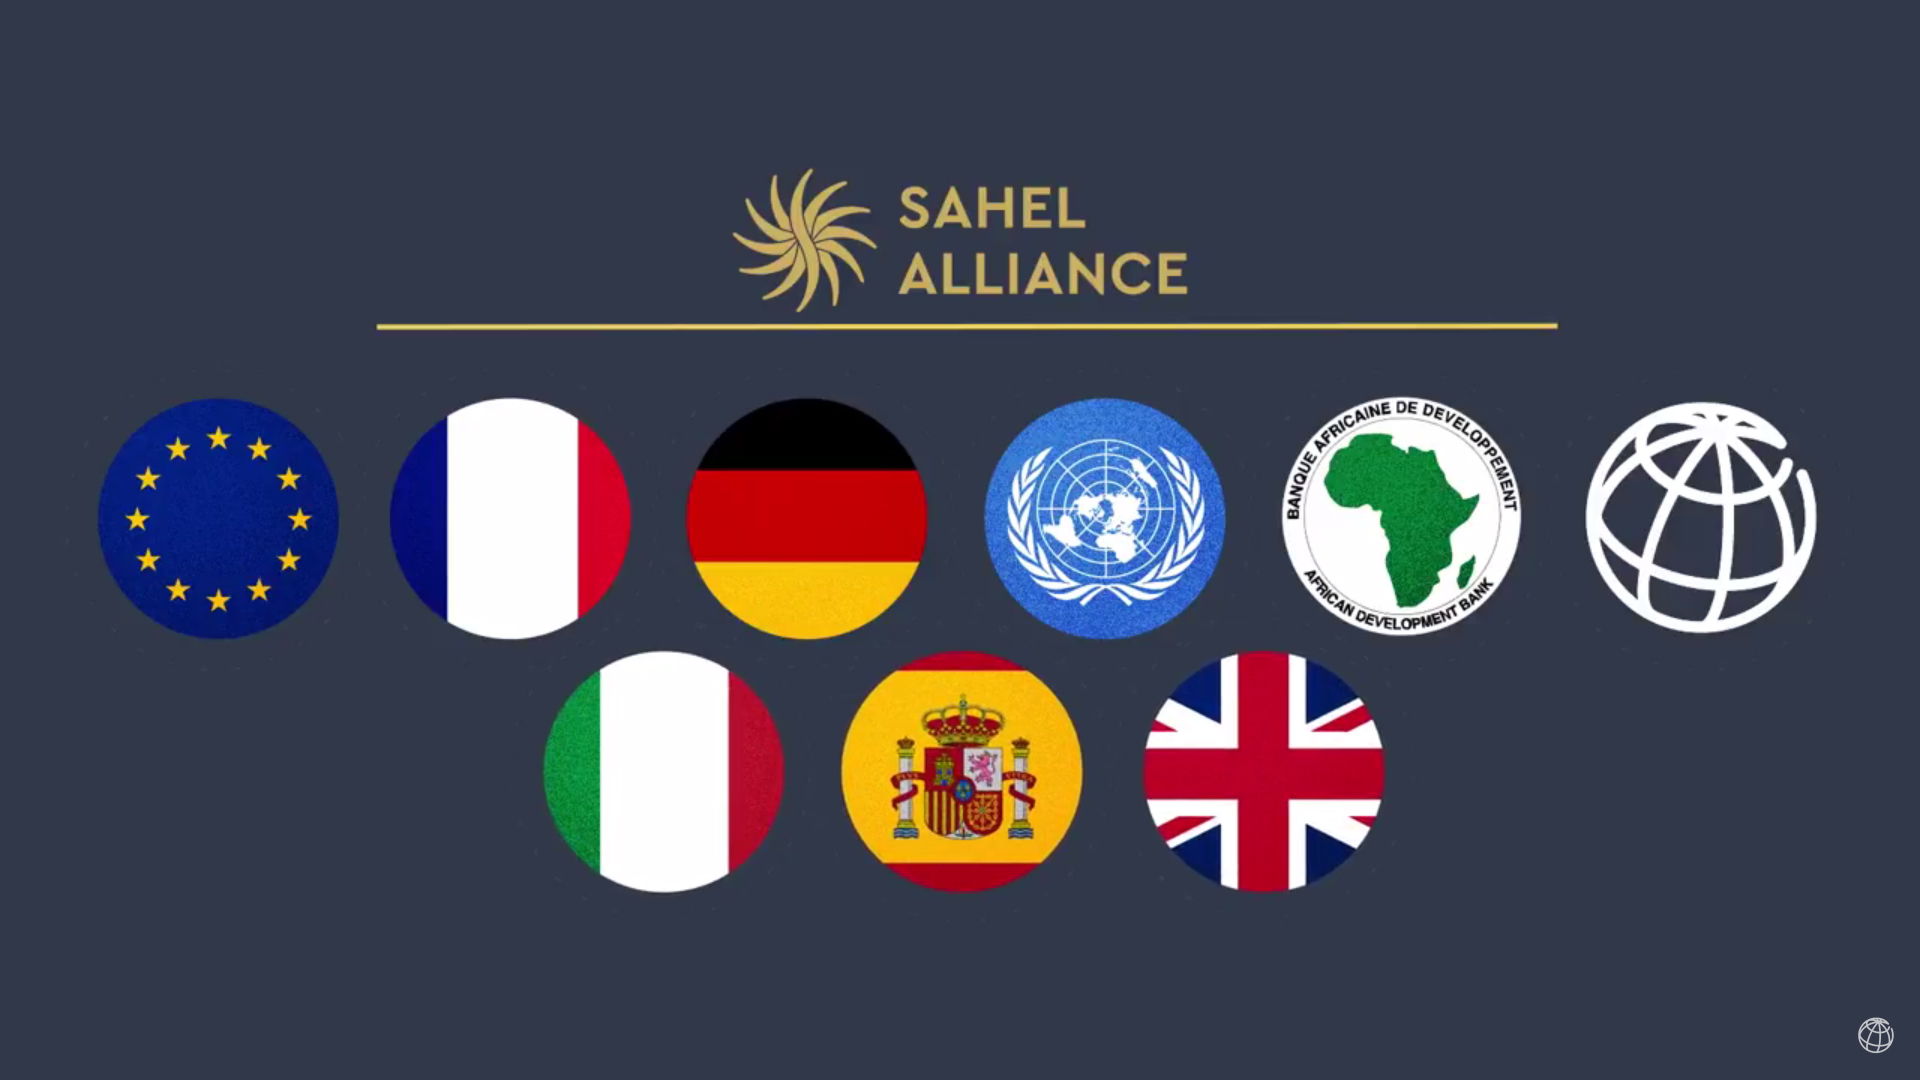 """Standbild aus dem Video """"The Sahel Alliance: Working Together to Tackle Shared Problems"""""""